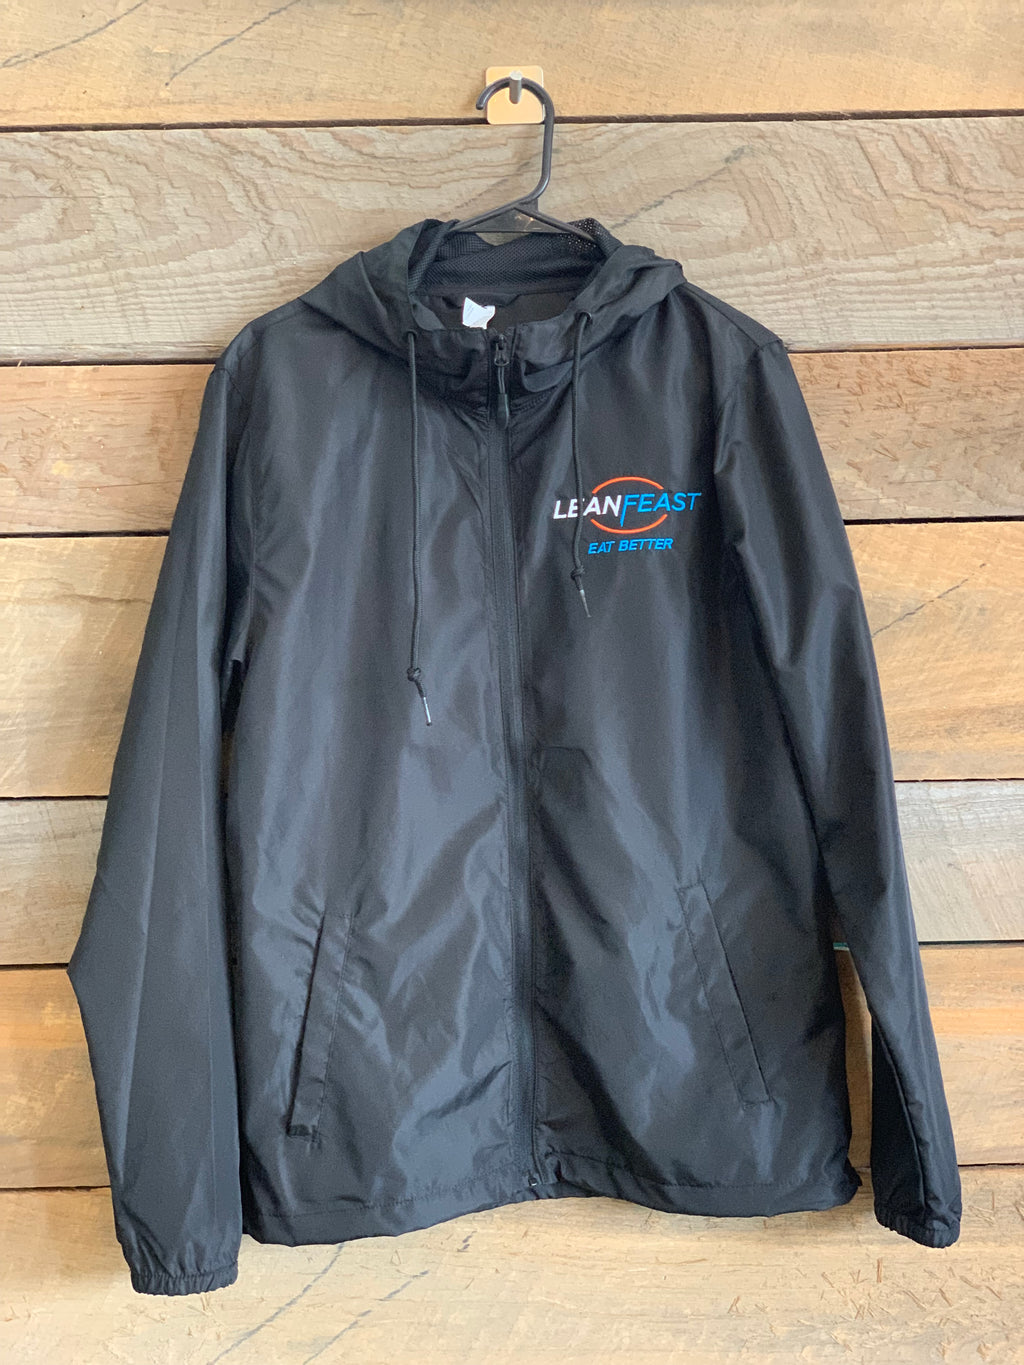 LeanFeast Lightweight Black Wind Breaker